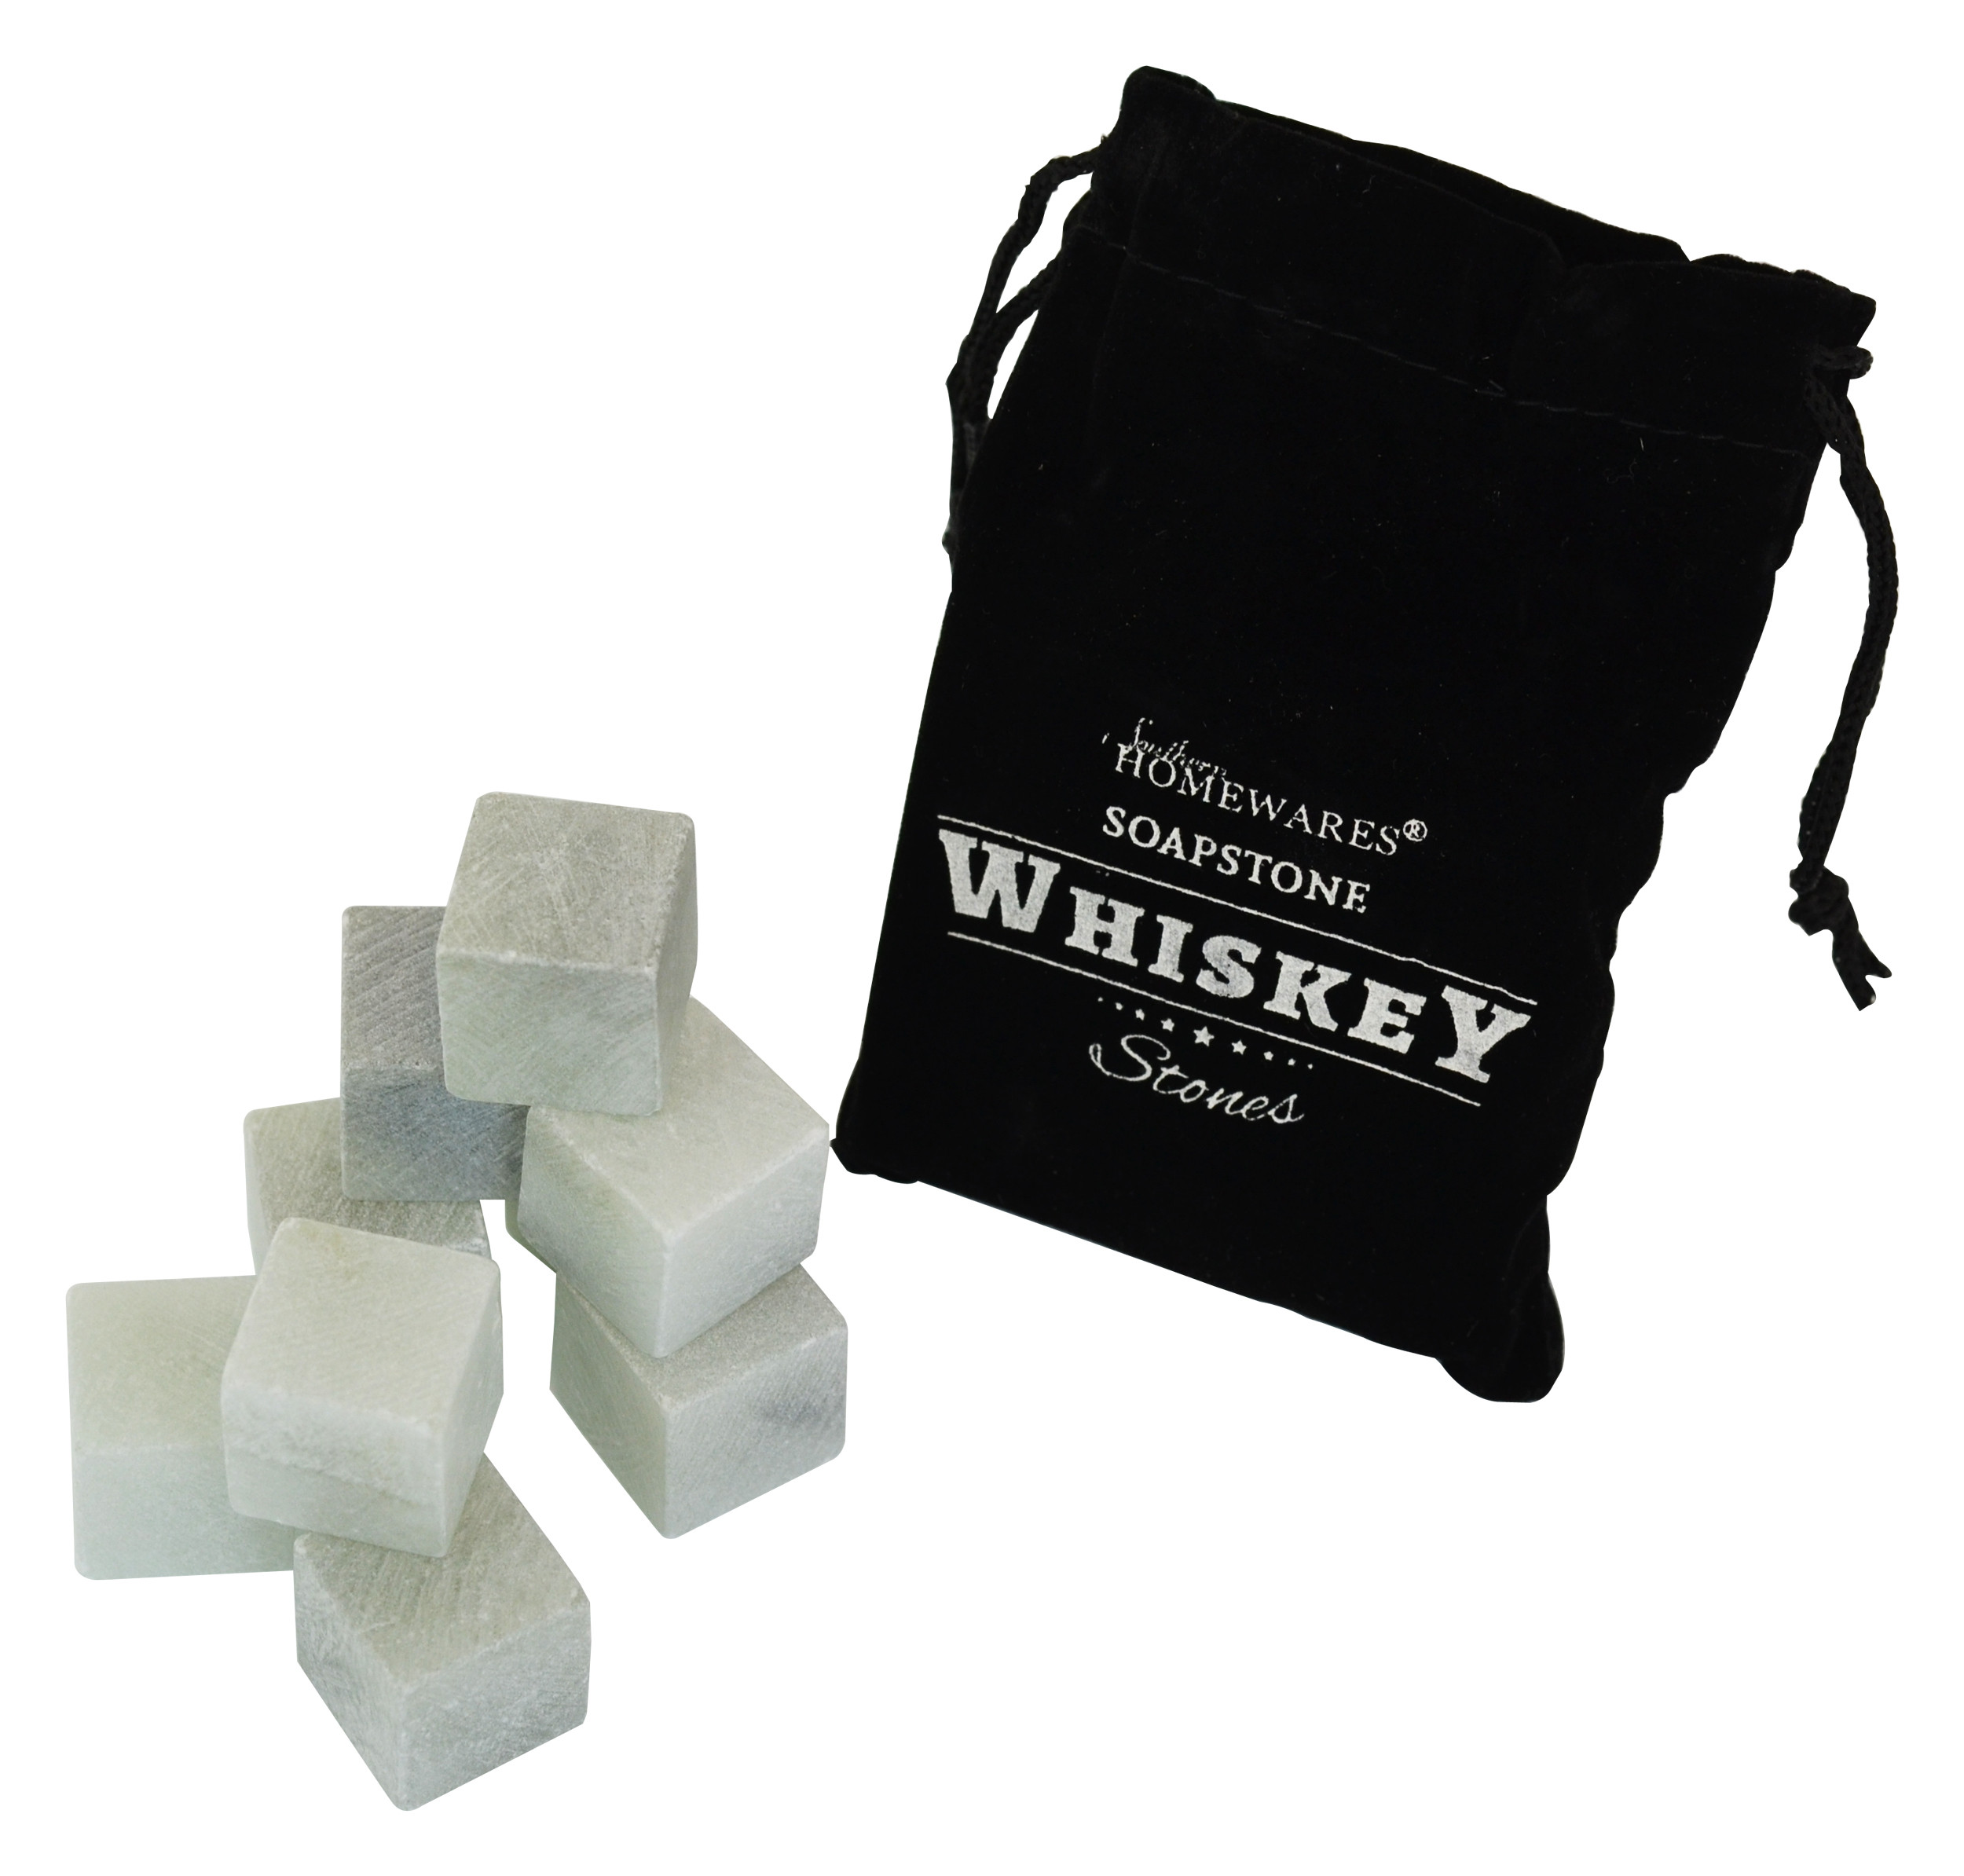 Soapstone Whiskey Stones  - Set of 9